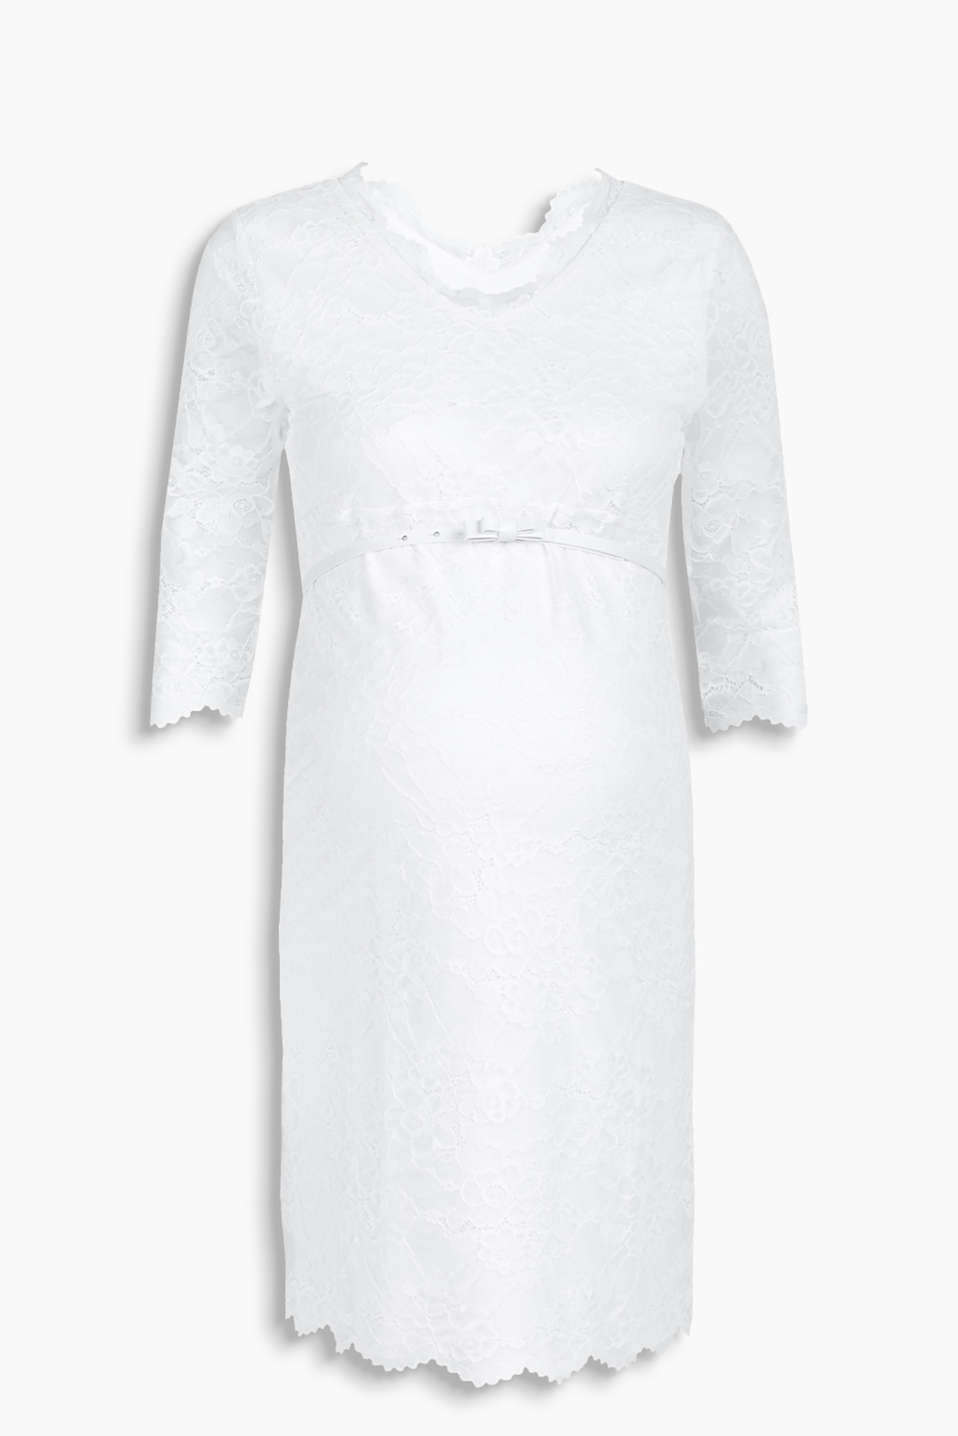 with a double V-neckline, three-quarter length sleeves and a bow belt